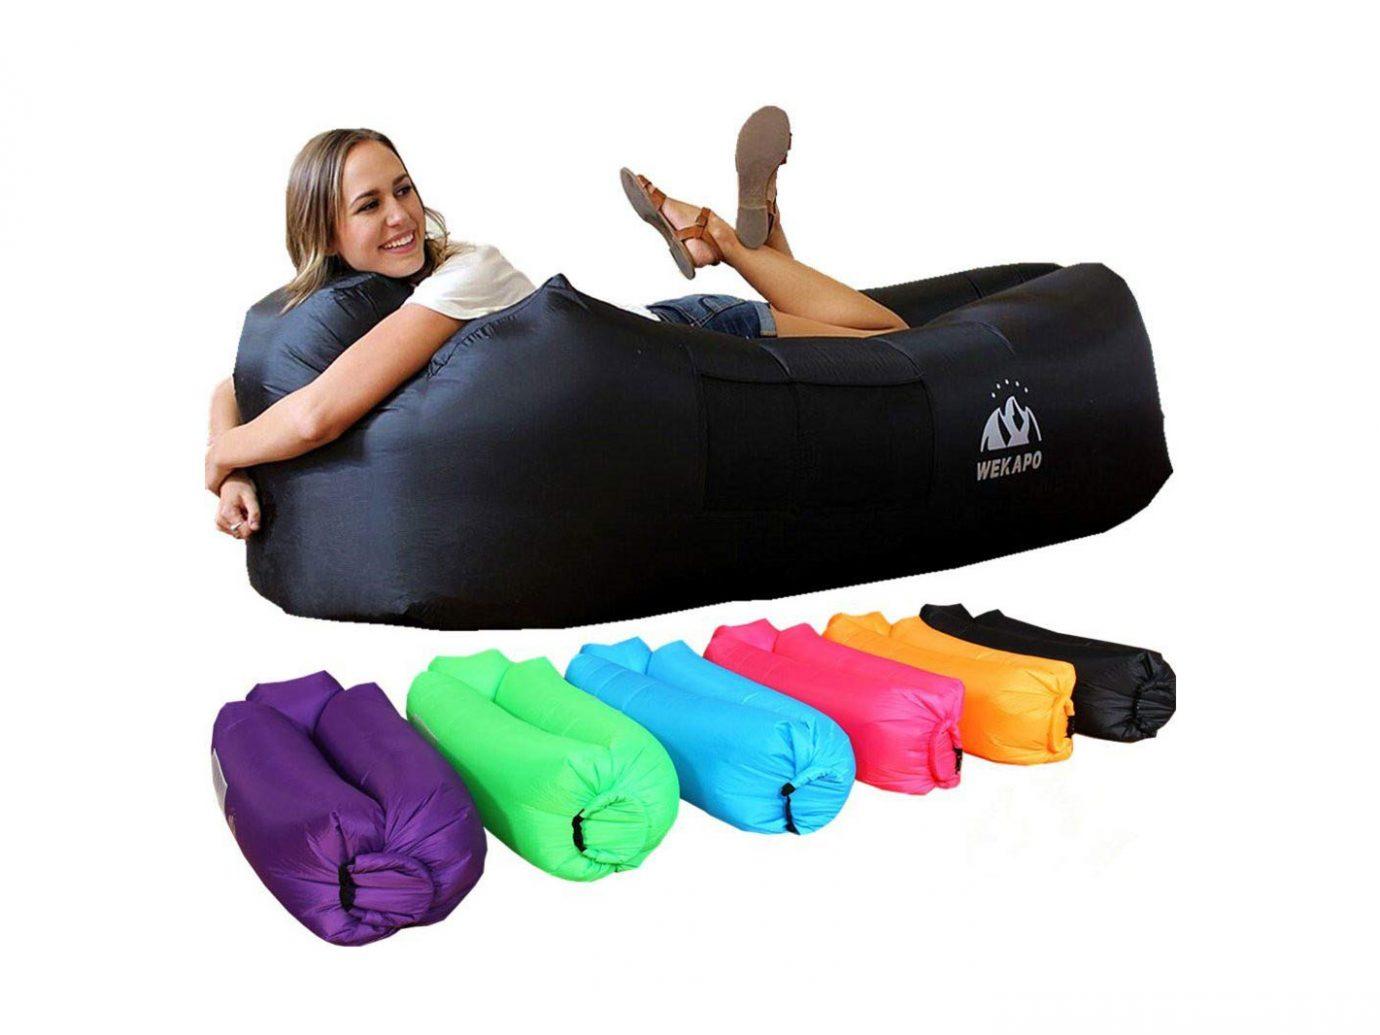 WEKAPO Inflatable Lounger for beach